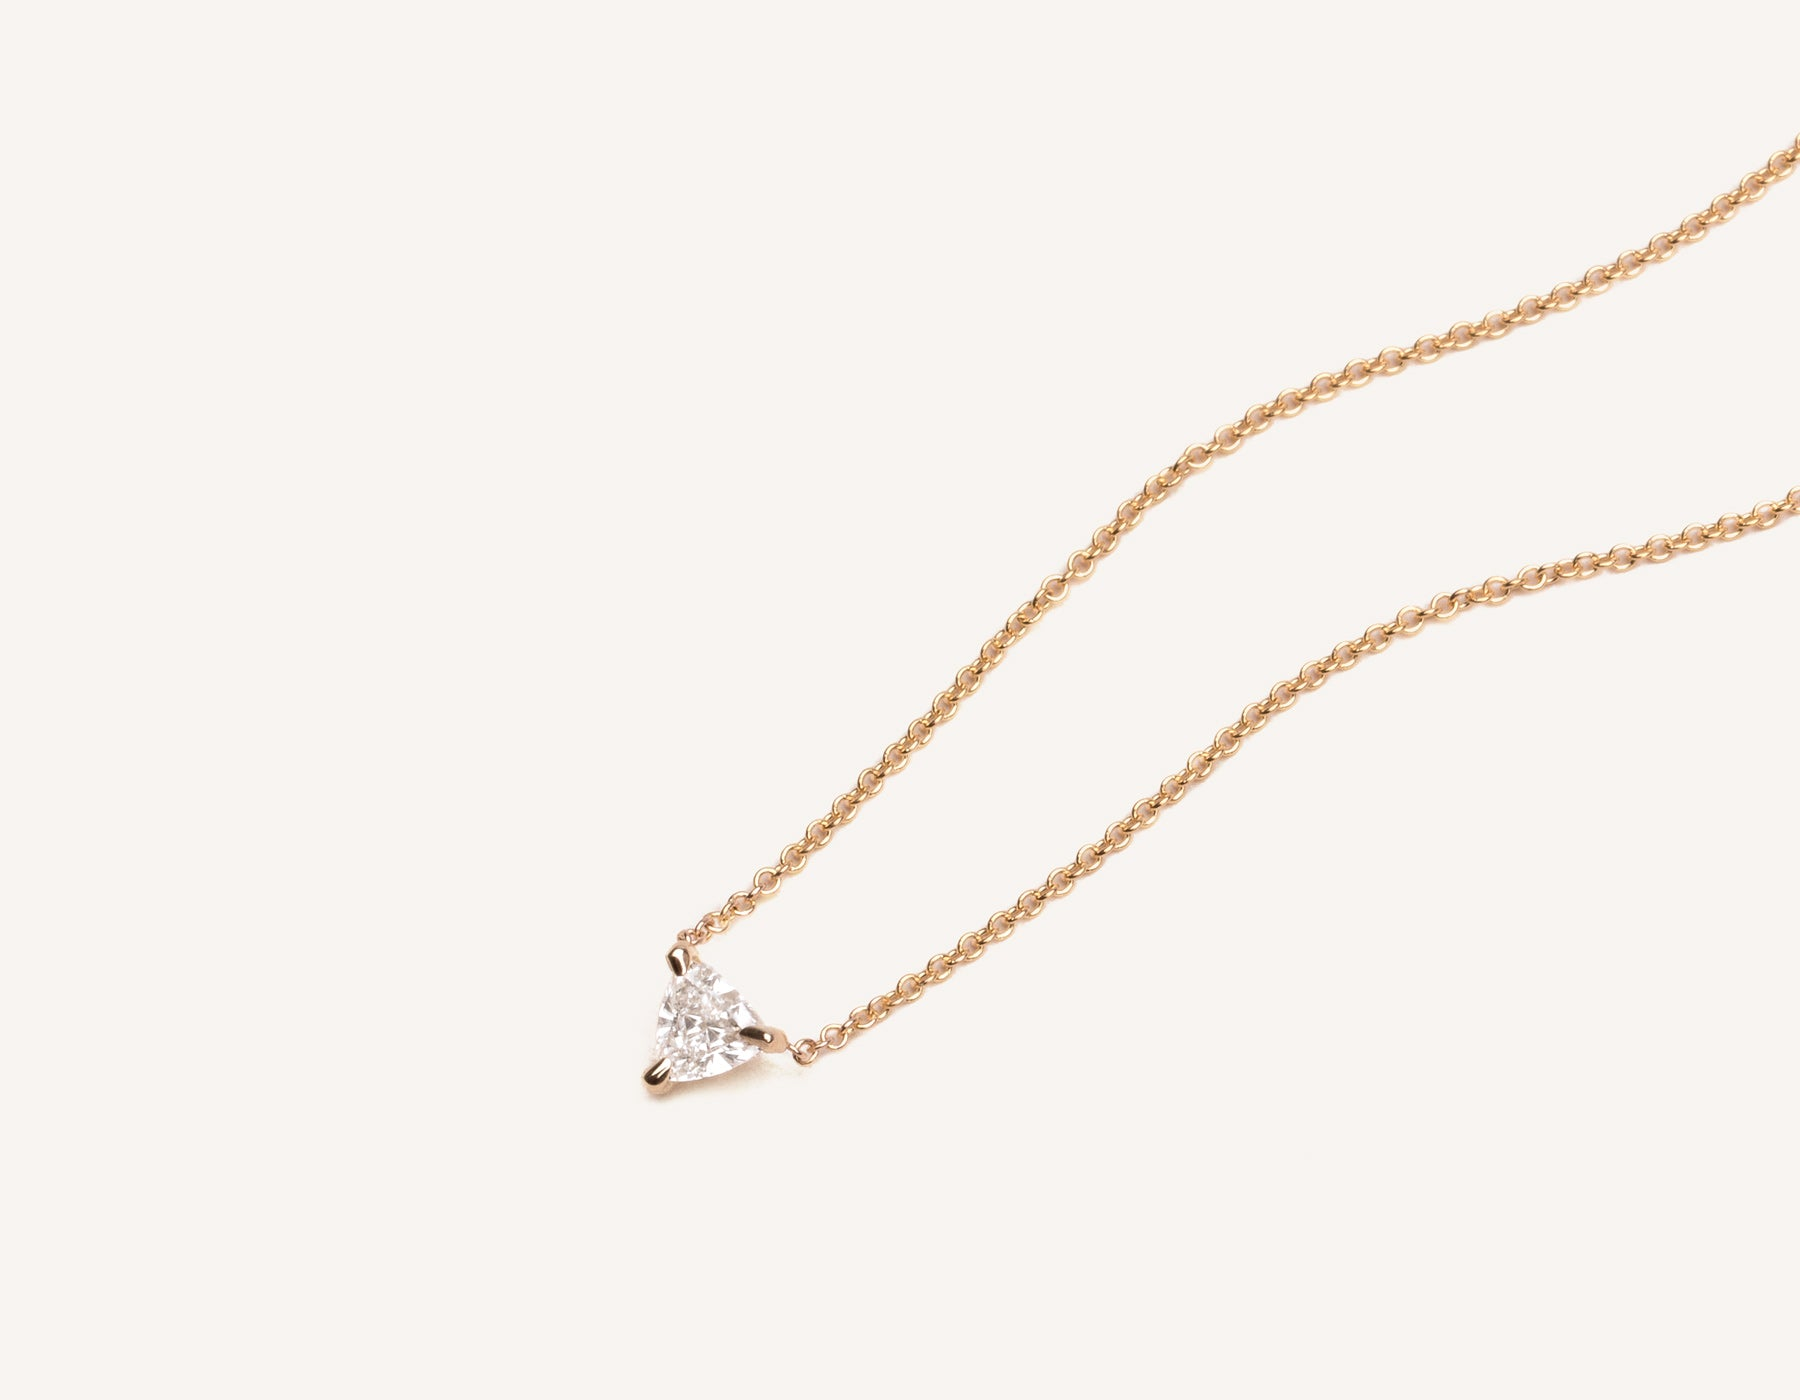 Close up of 14k solid gold Trillion Diamond Necklace with triangle diamond on simple chain by Vrai & Oro modern minimalist jewelry, 14K Rose Gold